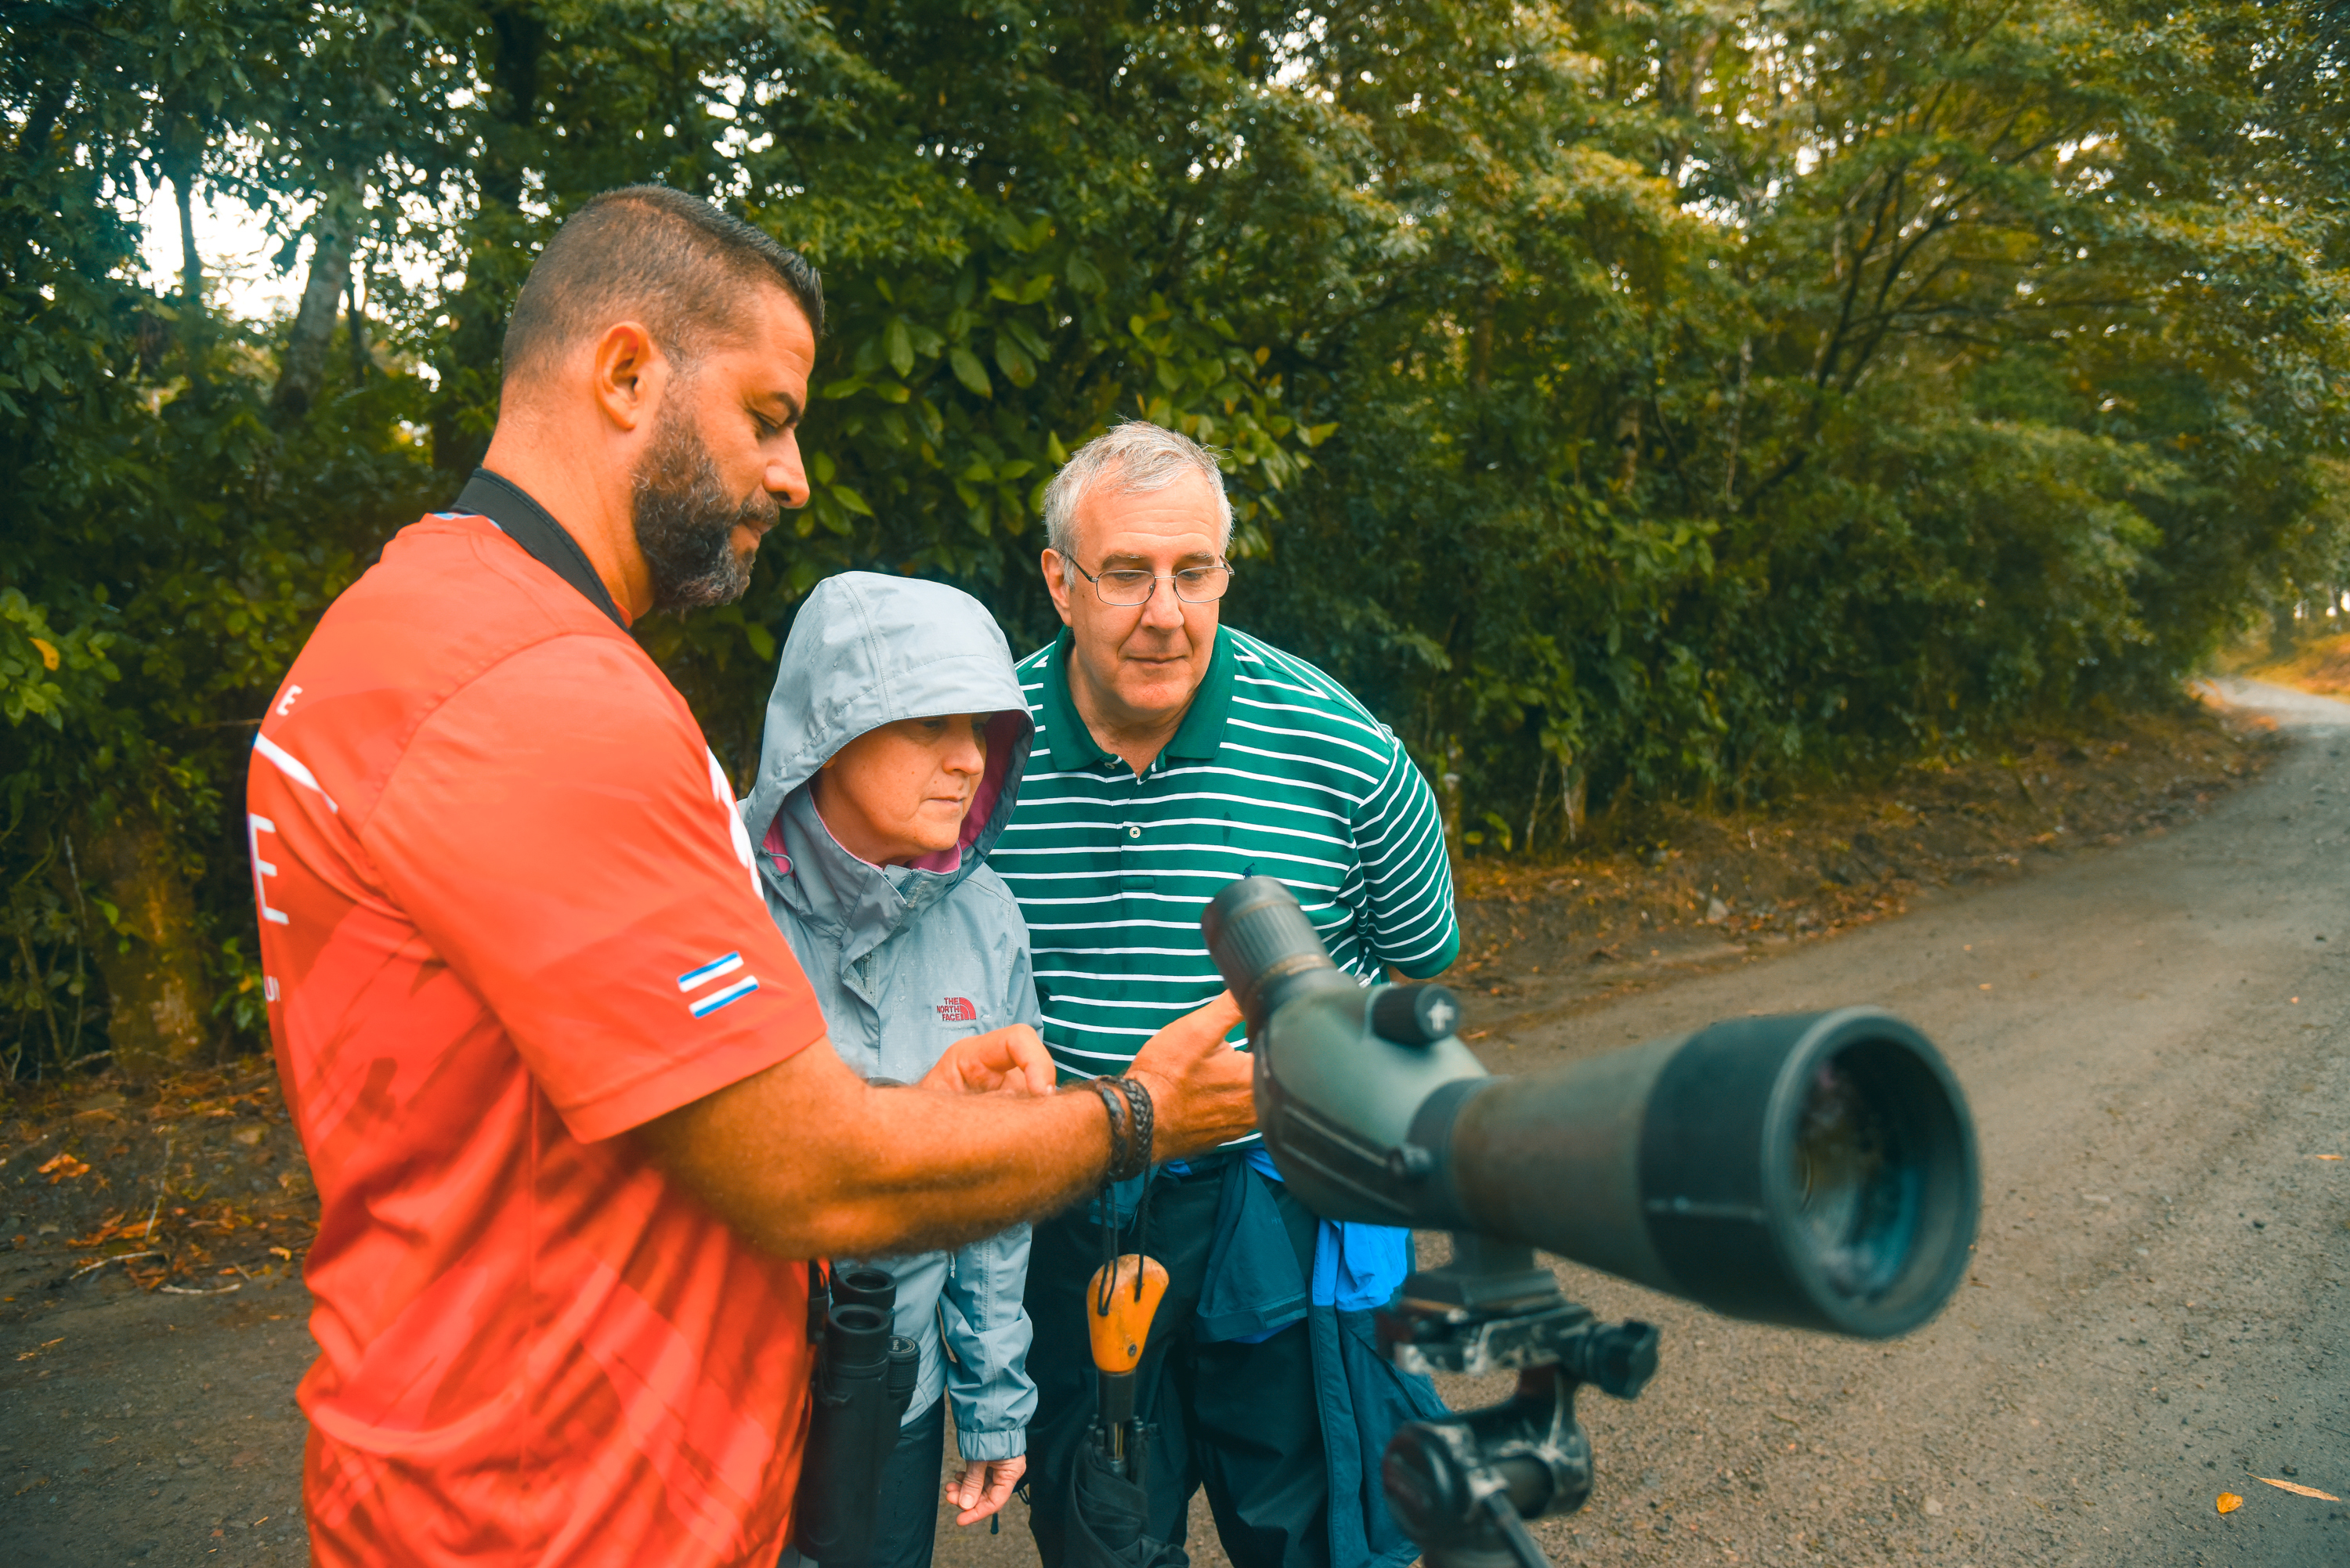 Early morning bird watching and nature tour with our birding experts!